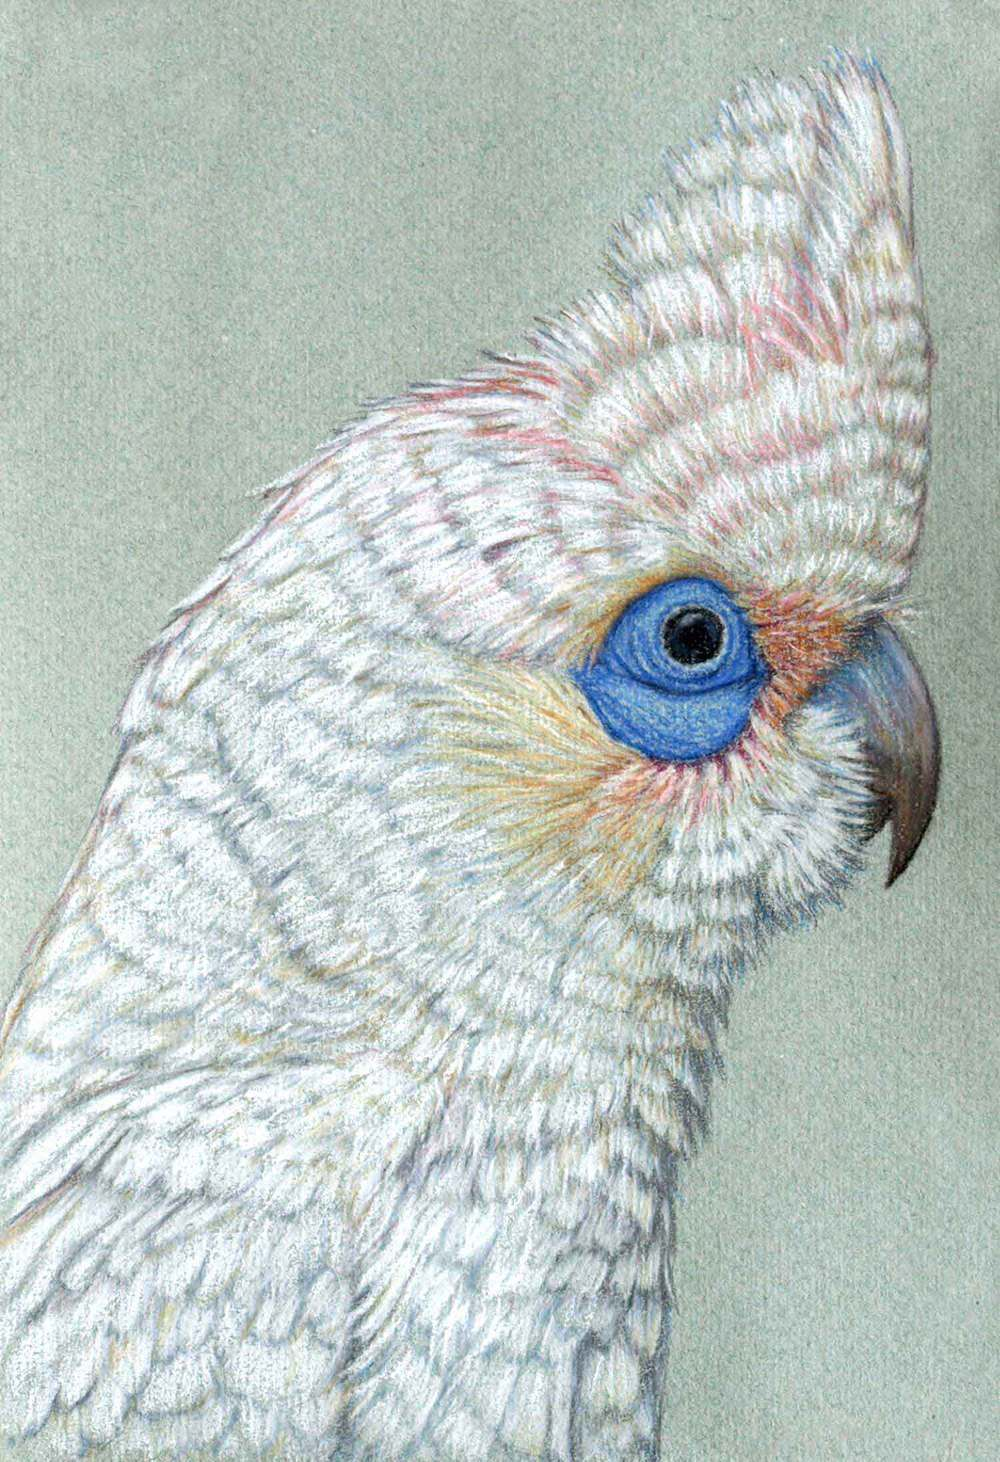 Corella 30 x 21 cm  Pastel on handmade paper  SOLD